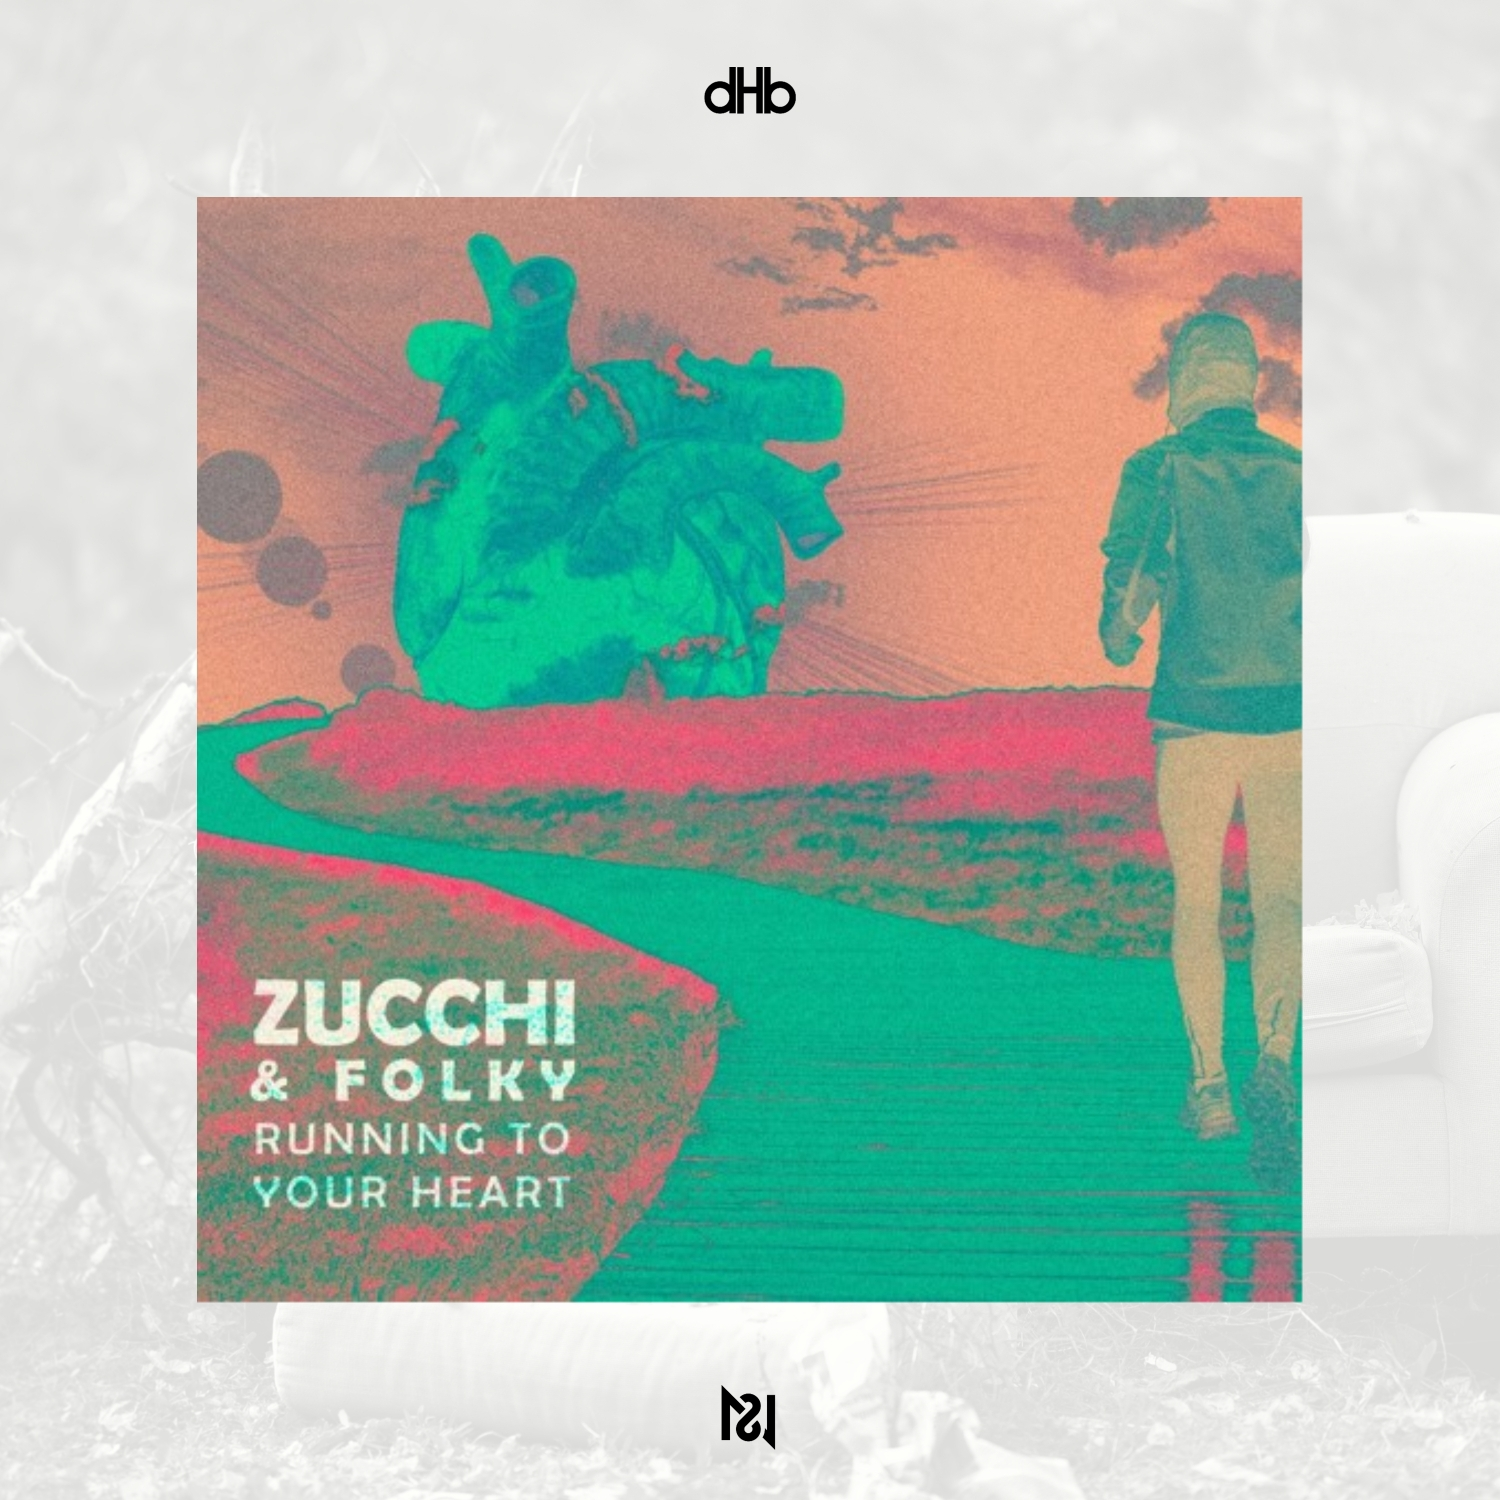 Zucchi & Folky - Running To Your Heart (Original Mix)